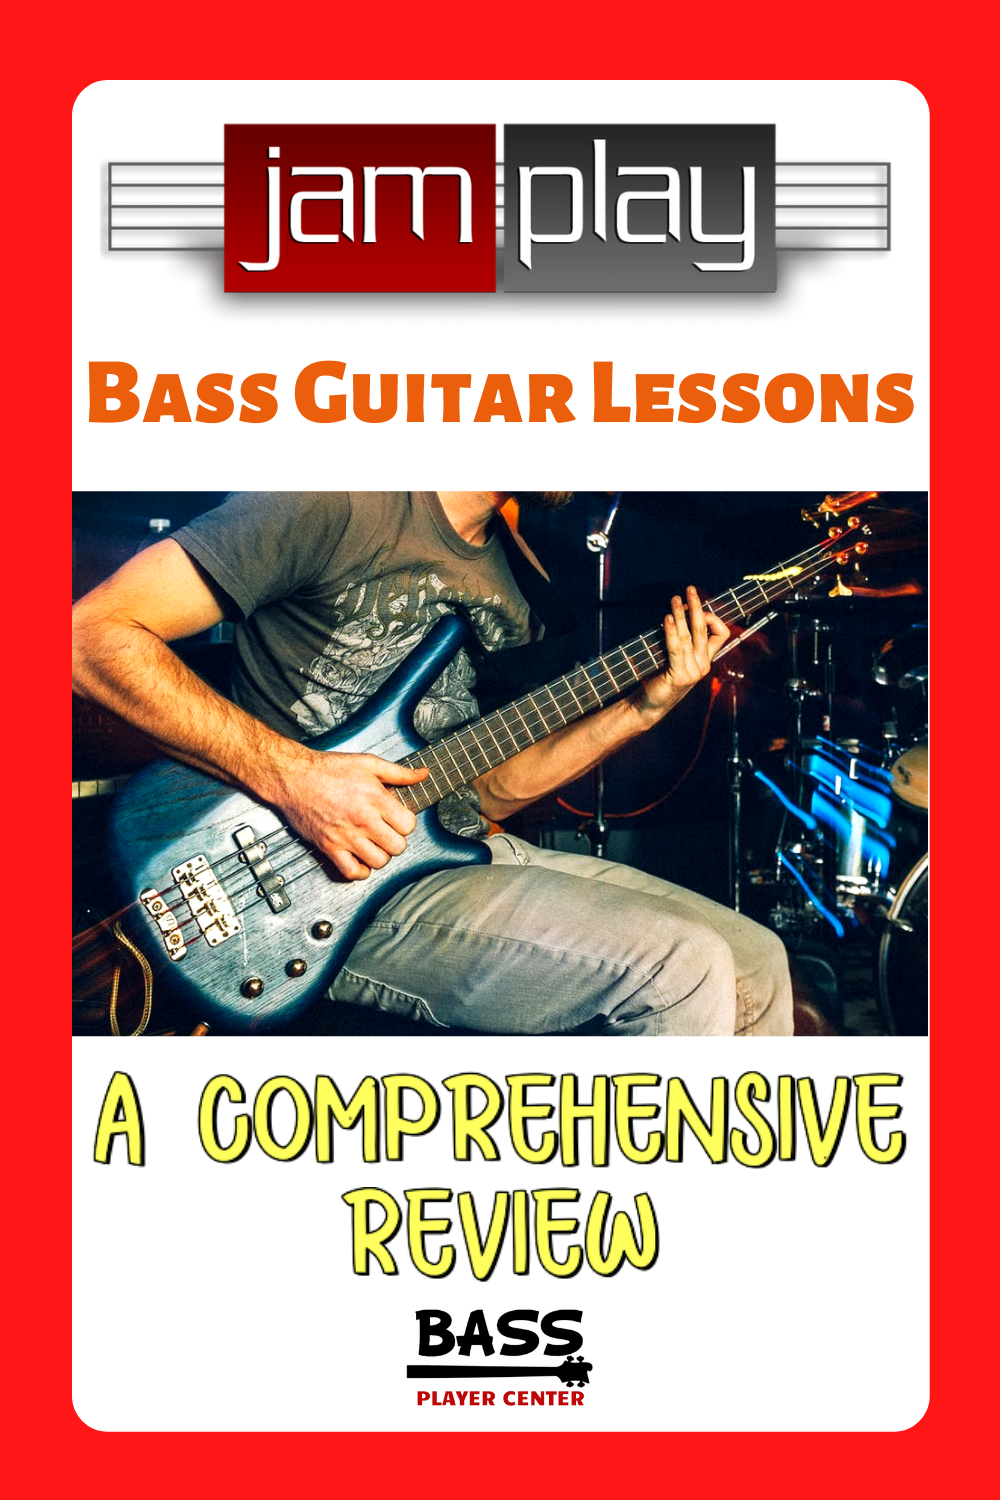 JamPlay Bass Guitar Lessons Review